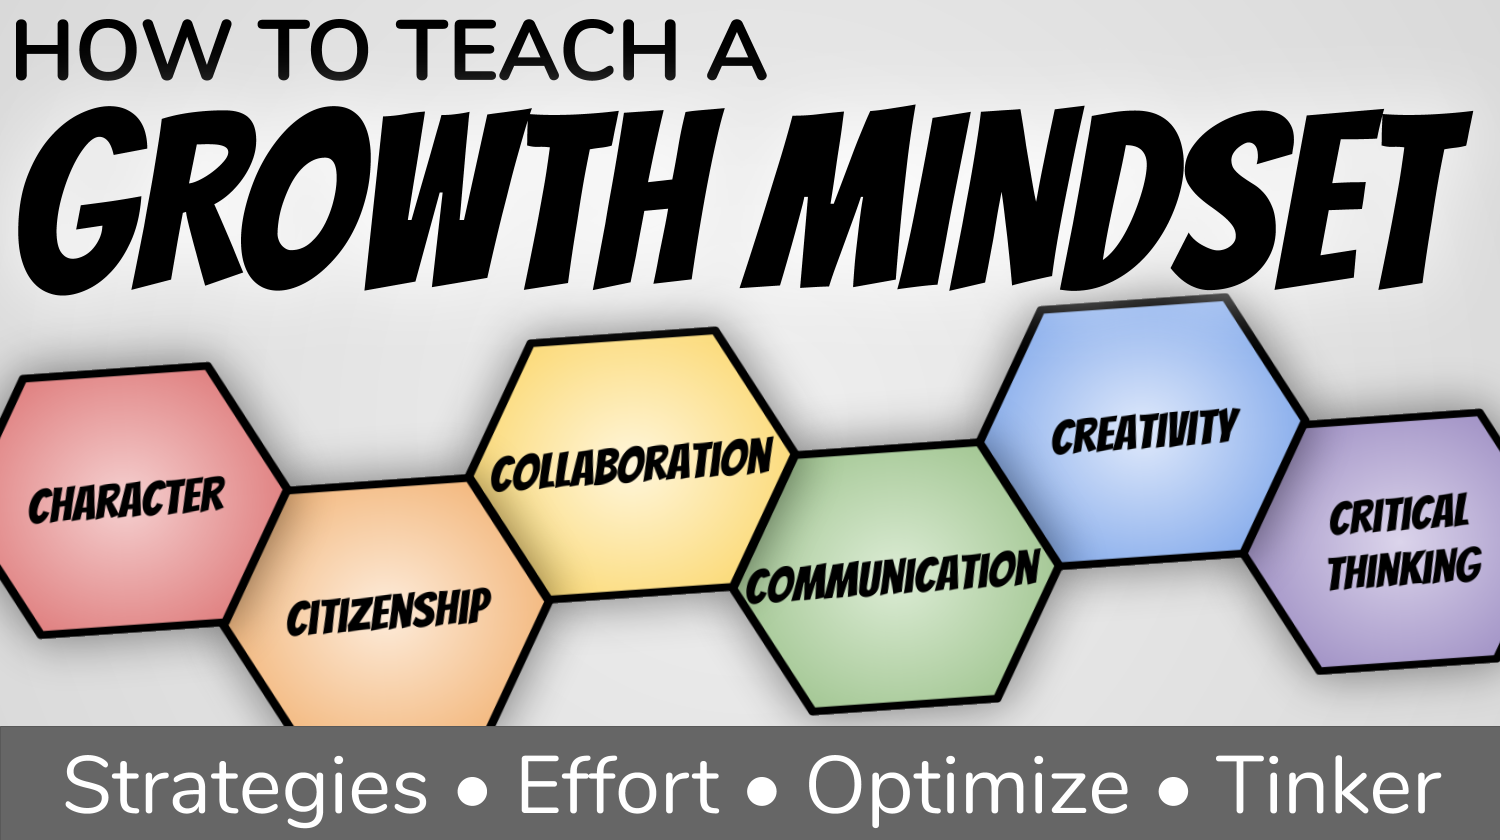 How to teach a growth mindset with Strategies, Effort, Optimization, and Tinkering: Character, Citizenship, Collaboration, Communication, Creativity, Critical Thinking